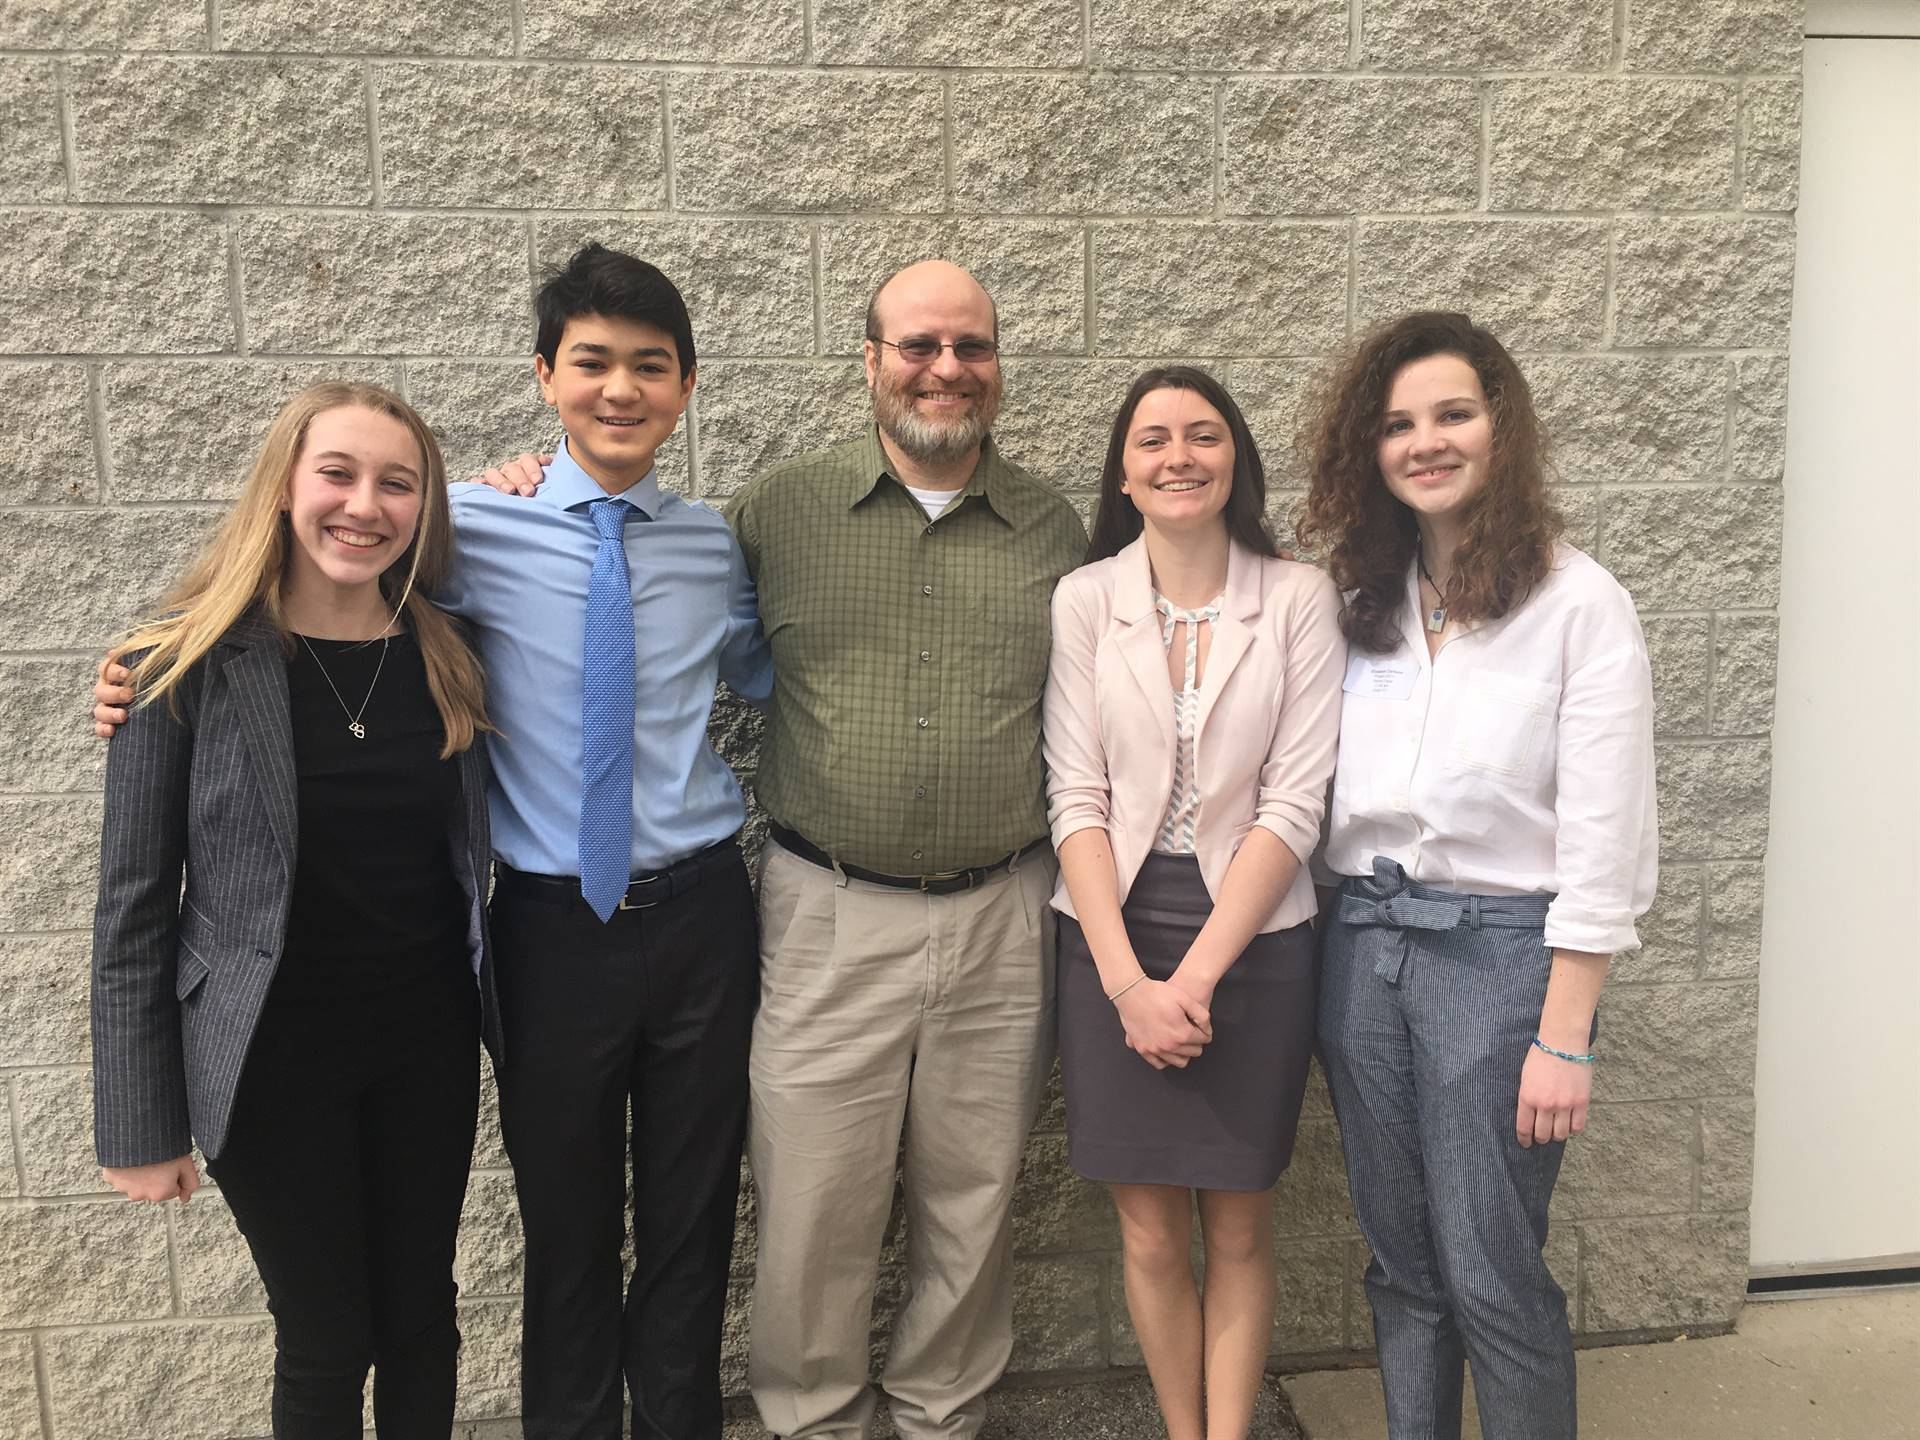 History Day 2019 students from MVHS